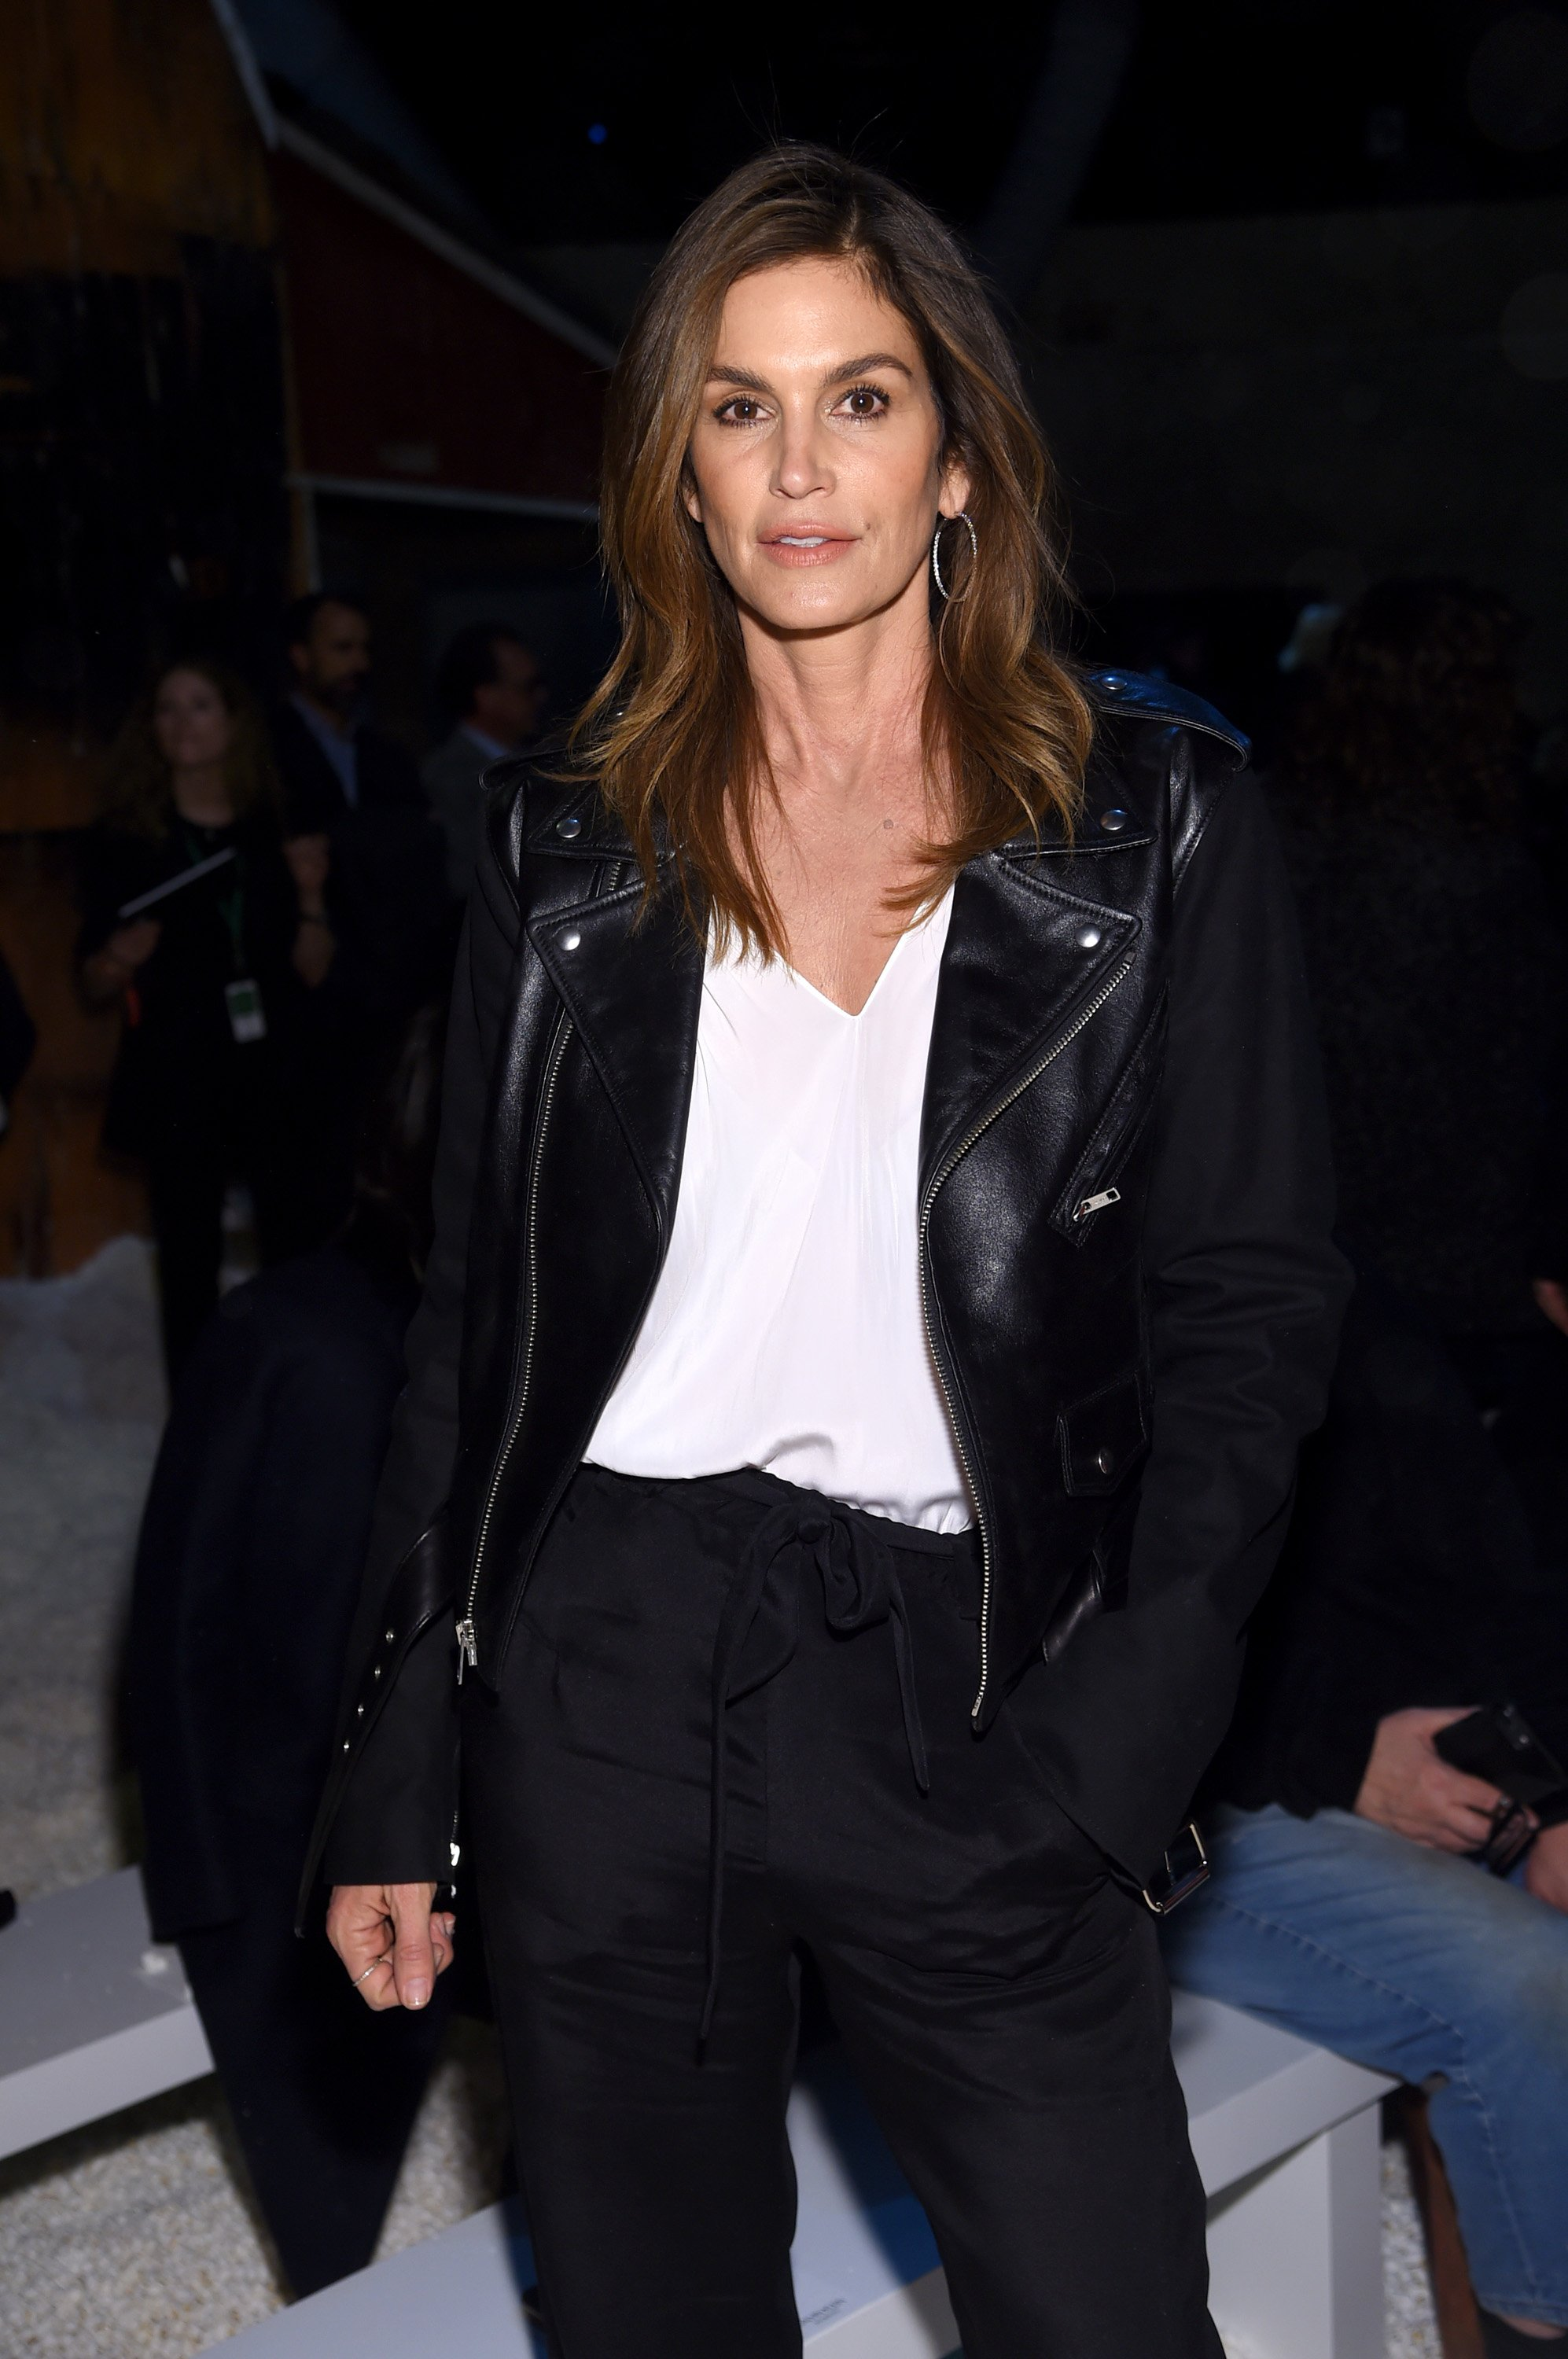 Cindy Crawford attends the Calvin Klein Collection front row during New York Fashion Week at New York Stock Exchange on February 13, 2018, in New York City. | Source: Getty Images.